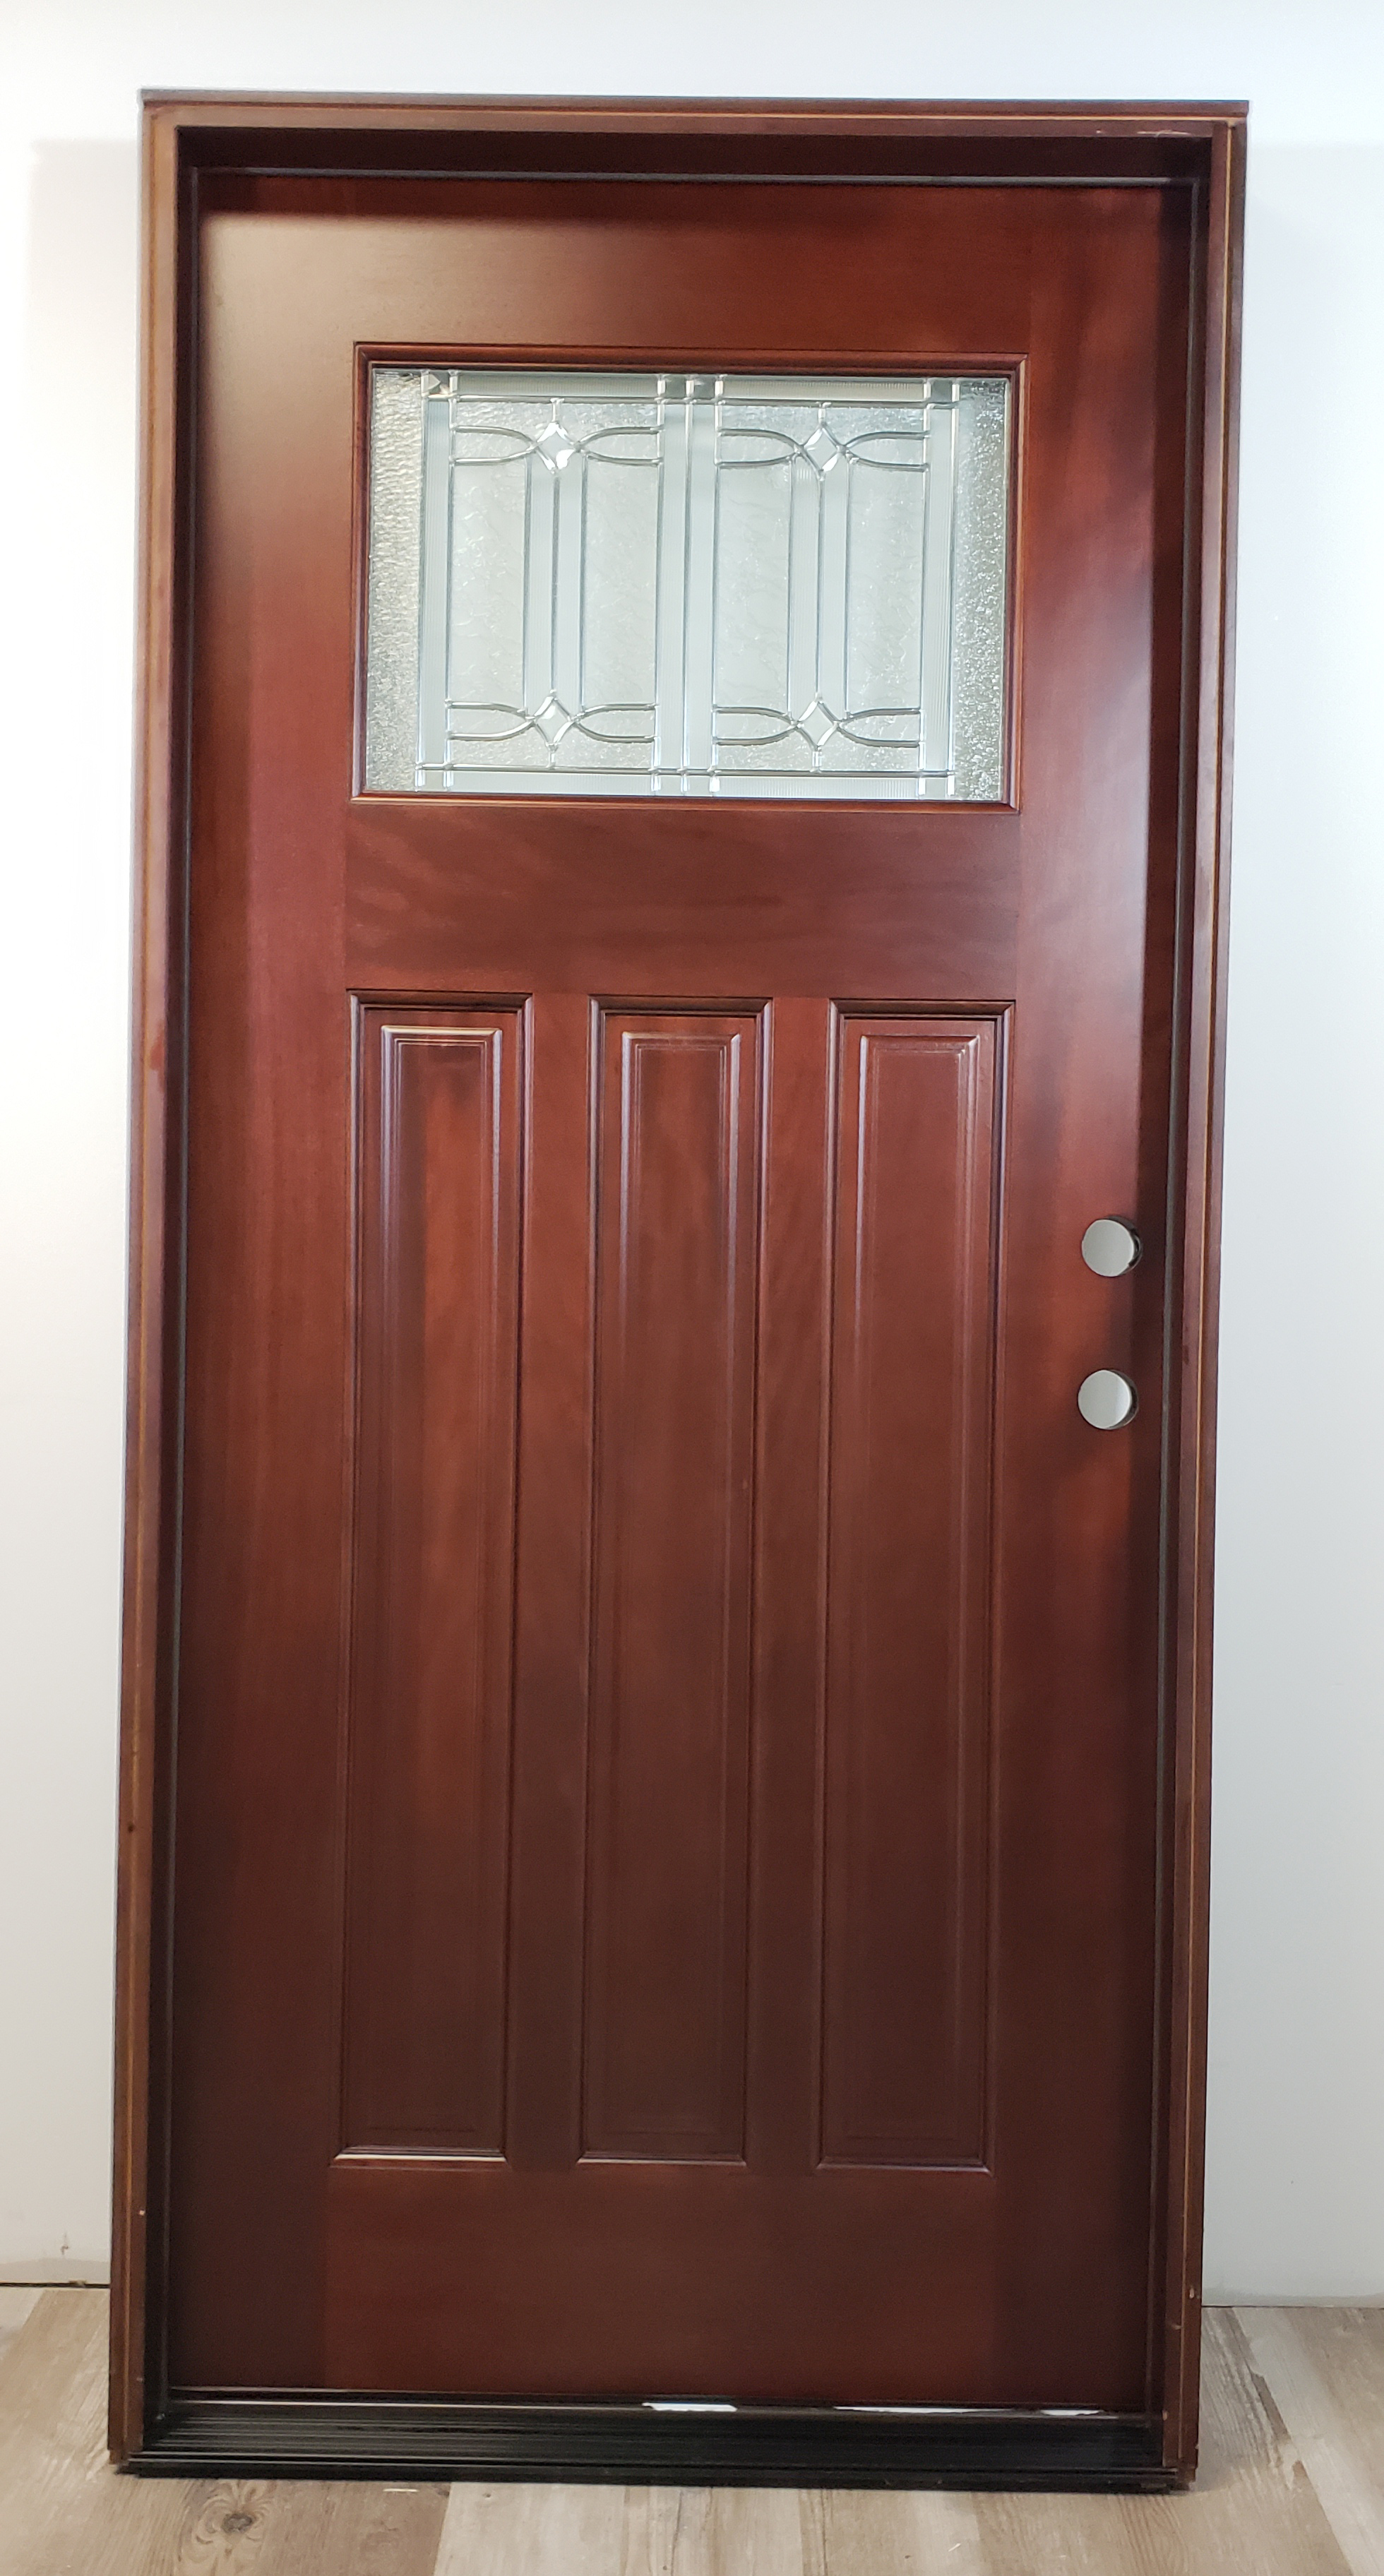 wood-pacific-entry-glass-square-exterior-door-mahogany-finish